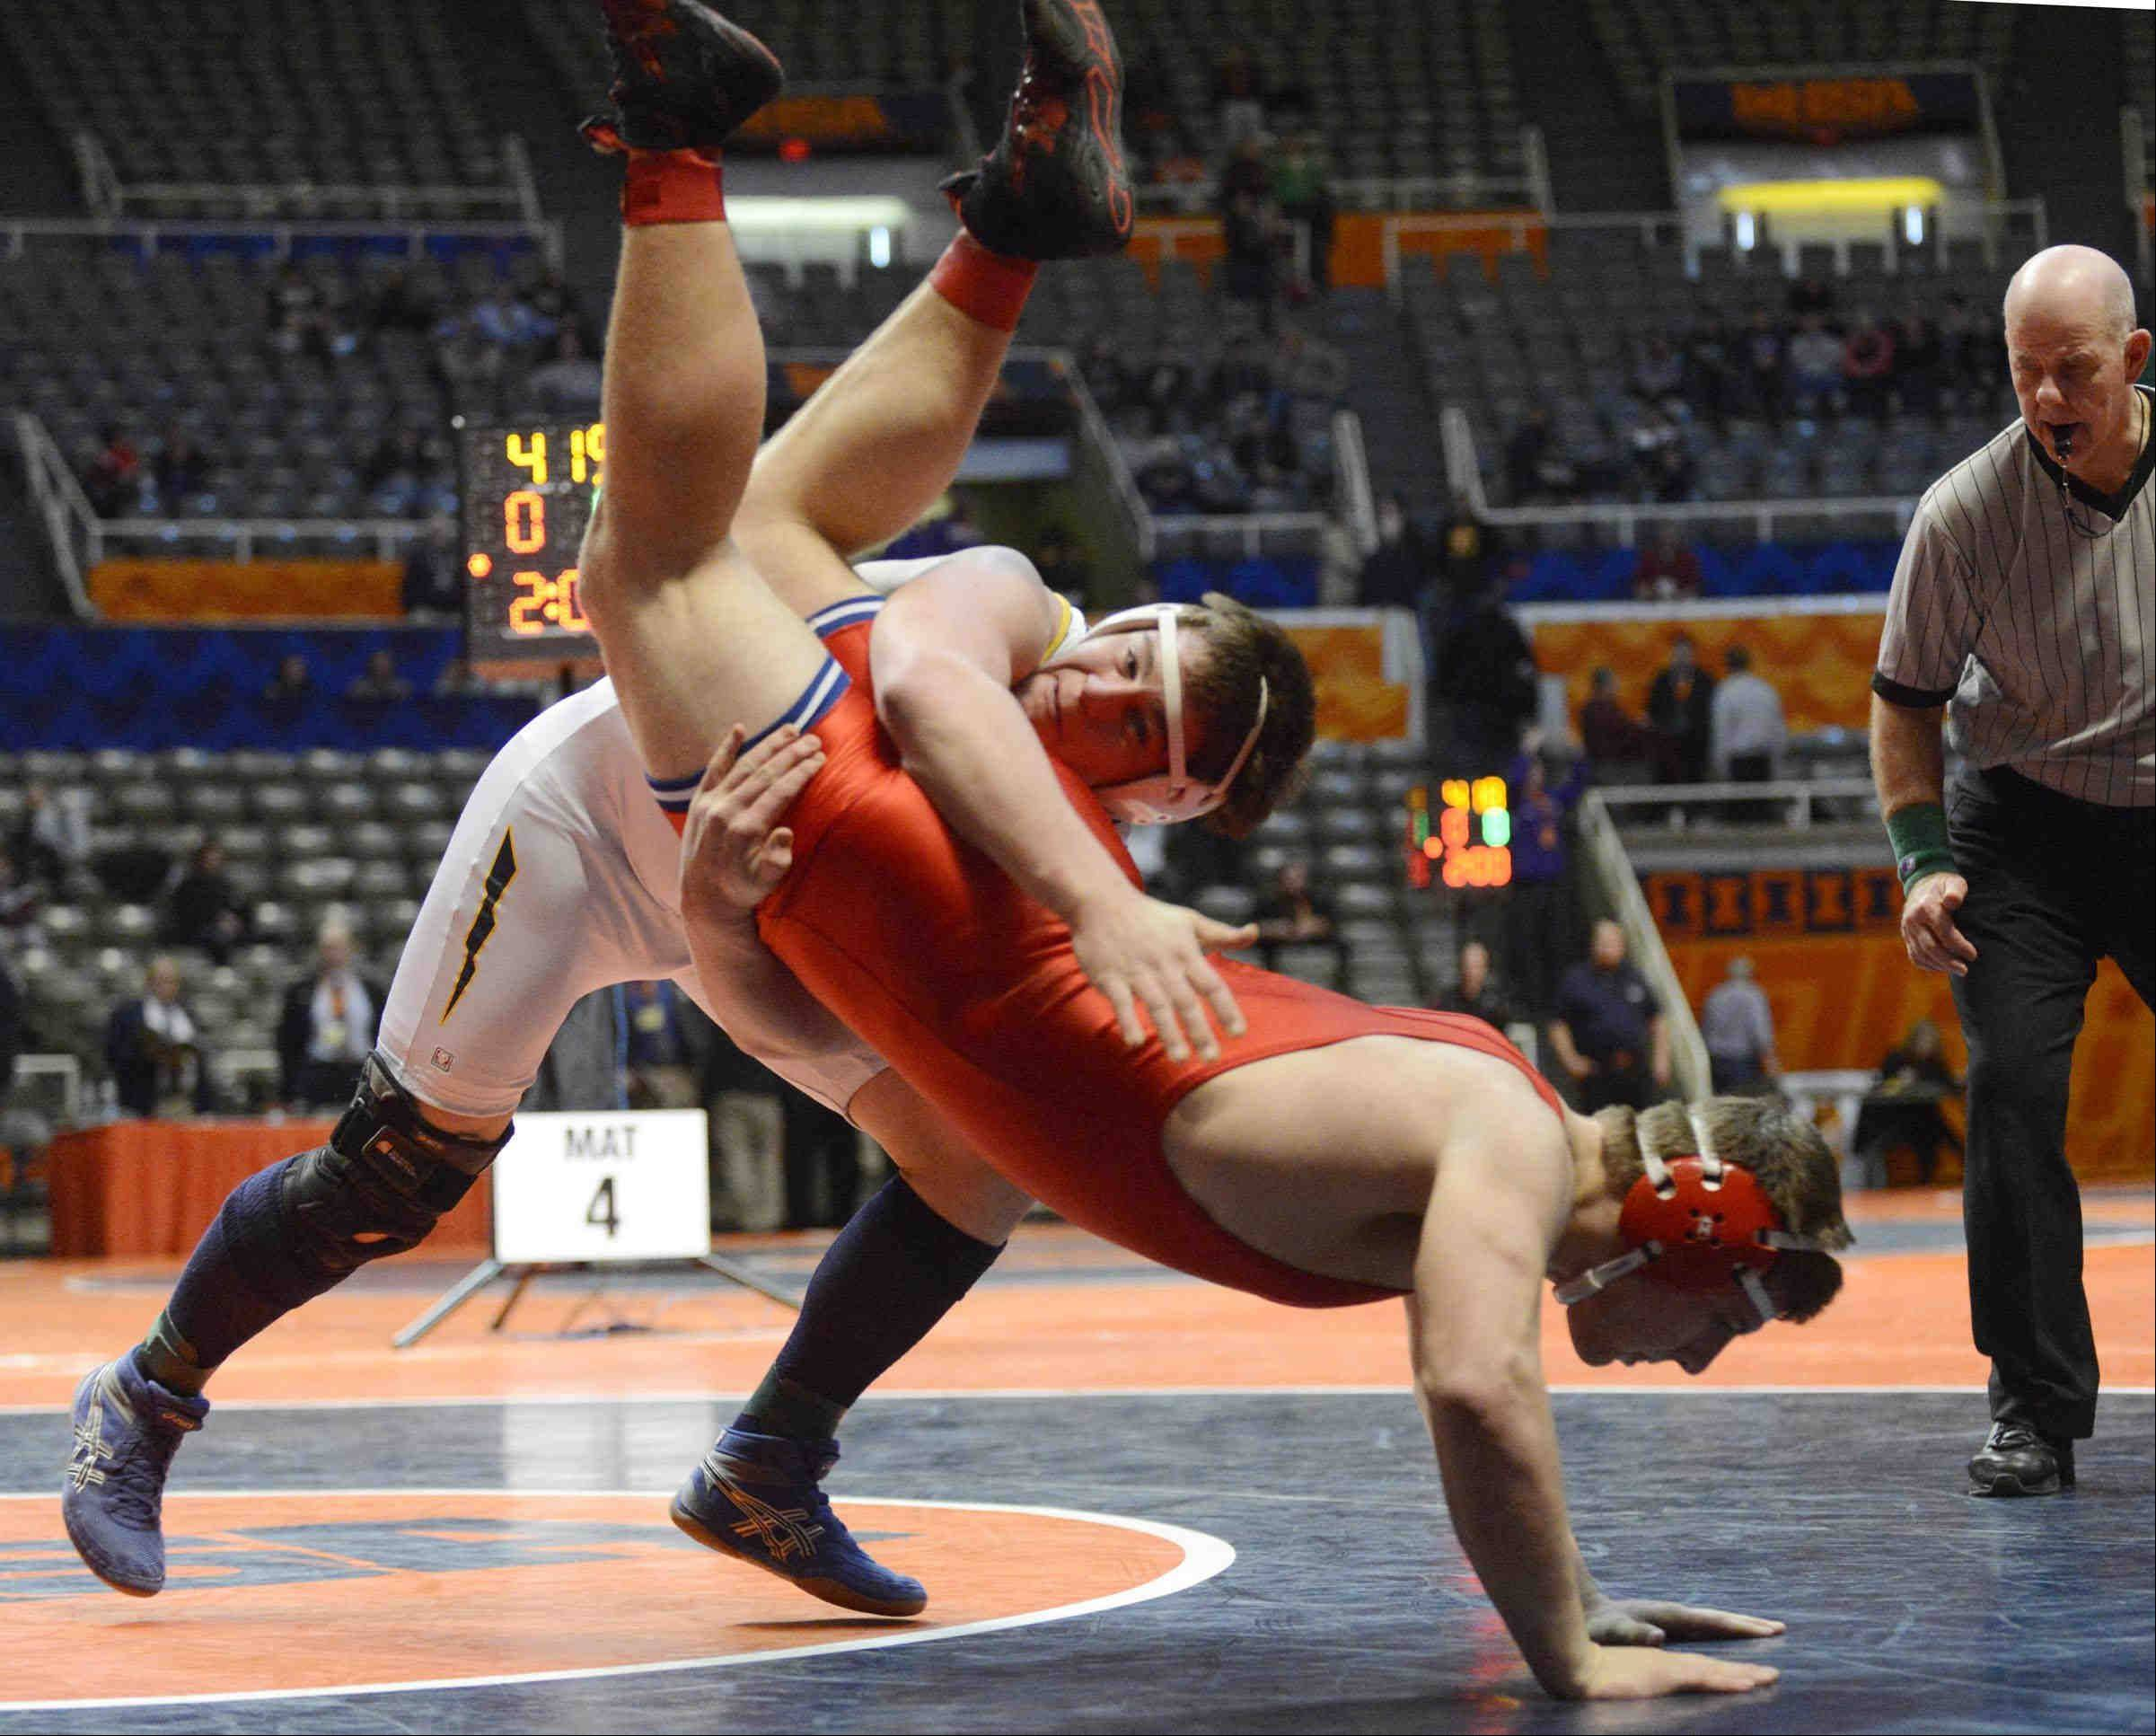 Dundee-Crown�s Ray Griggel controls his position as Jacob Suter of Glenbrook South tries to take control in the Class 3A 220-pound IHSA third place wrestling match at Assembly Hall in Champaign. Suter won and Griggel took fourth place.